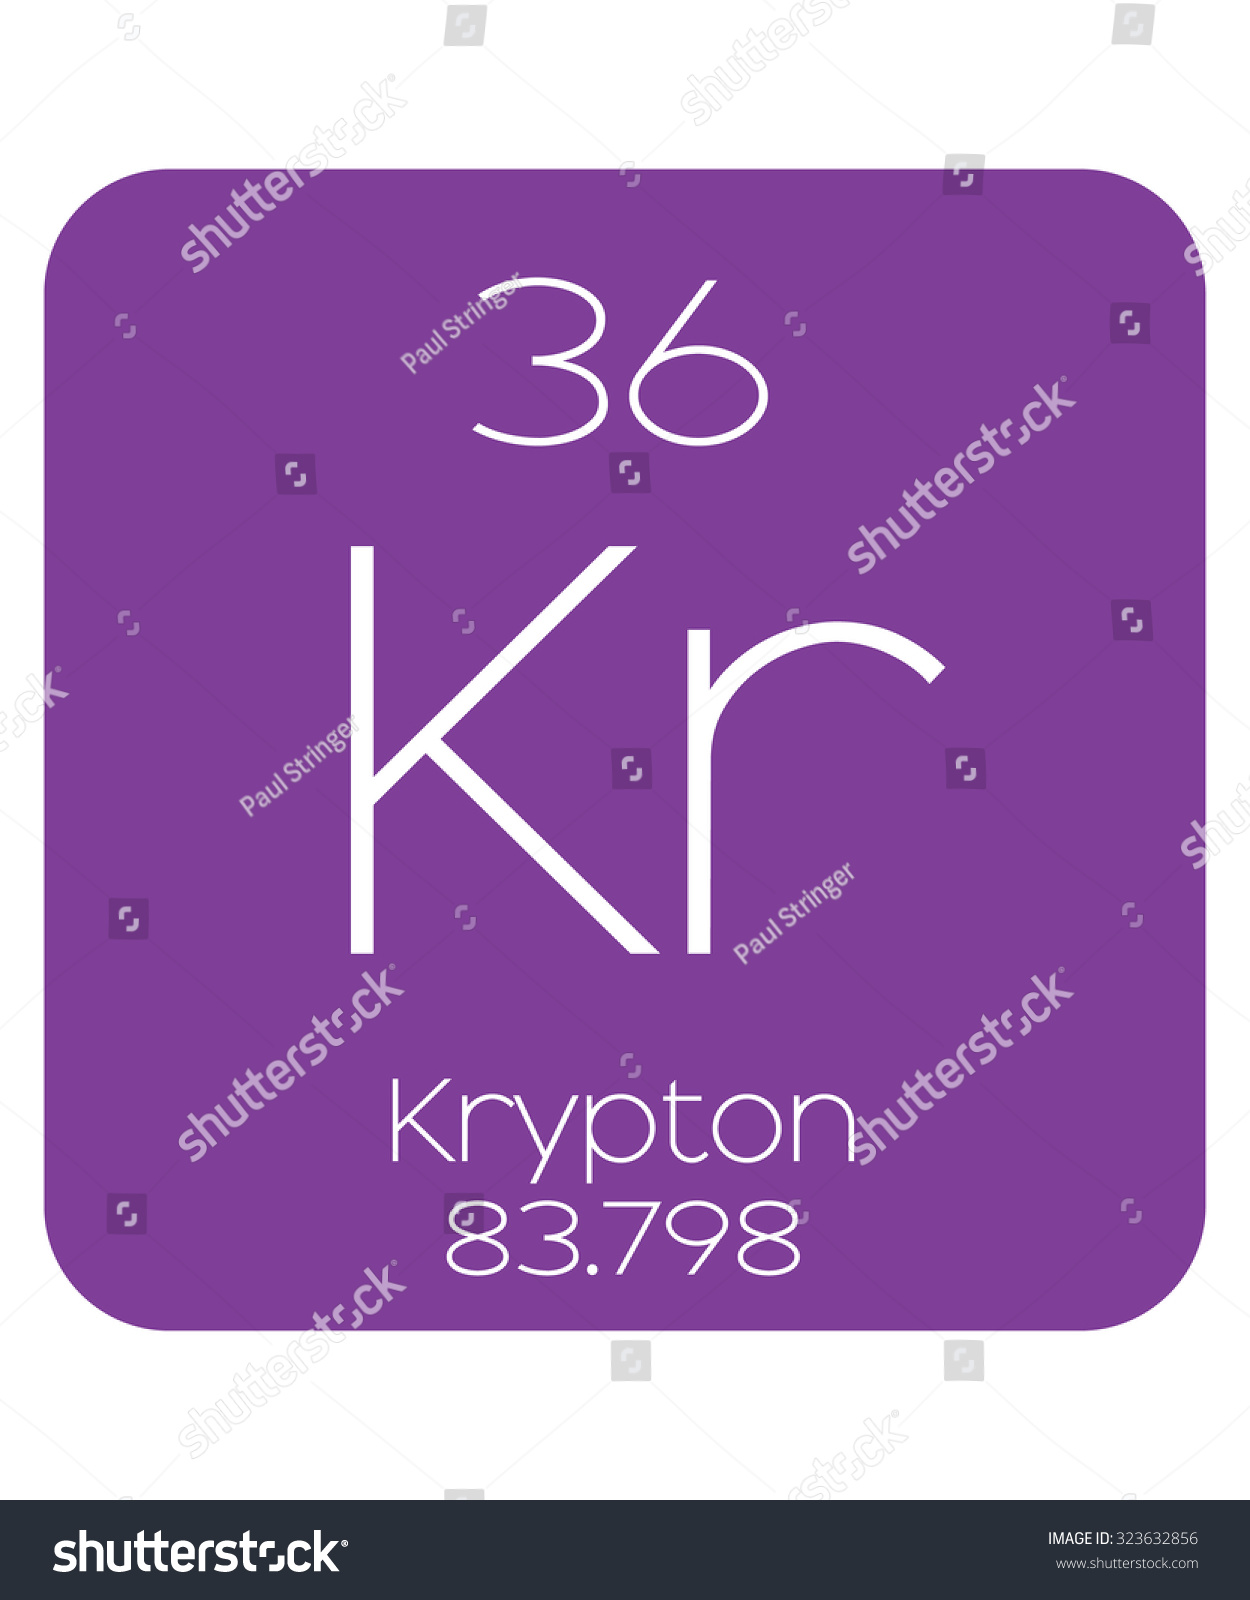 Kryptonite on periodic table choice image periodic table images is kryptonite on the periodic ford f250 wiring diagram online 3 periodic table of elements krypton gamestrikefo Gallery